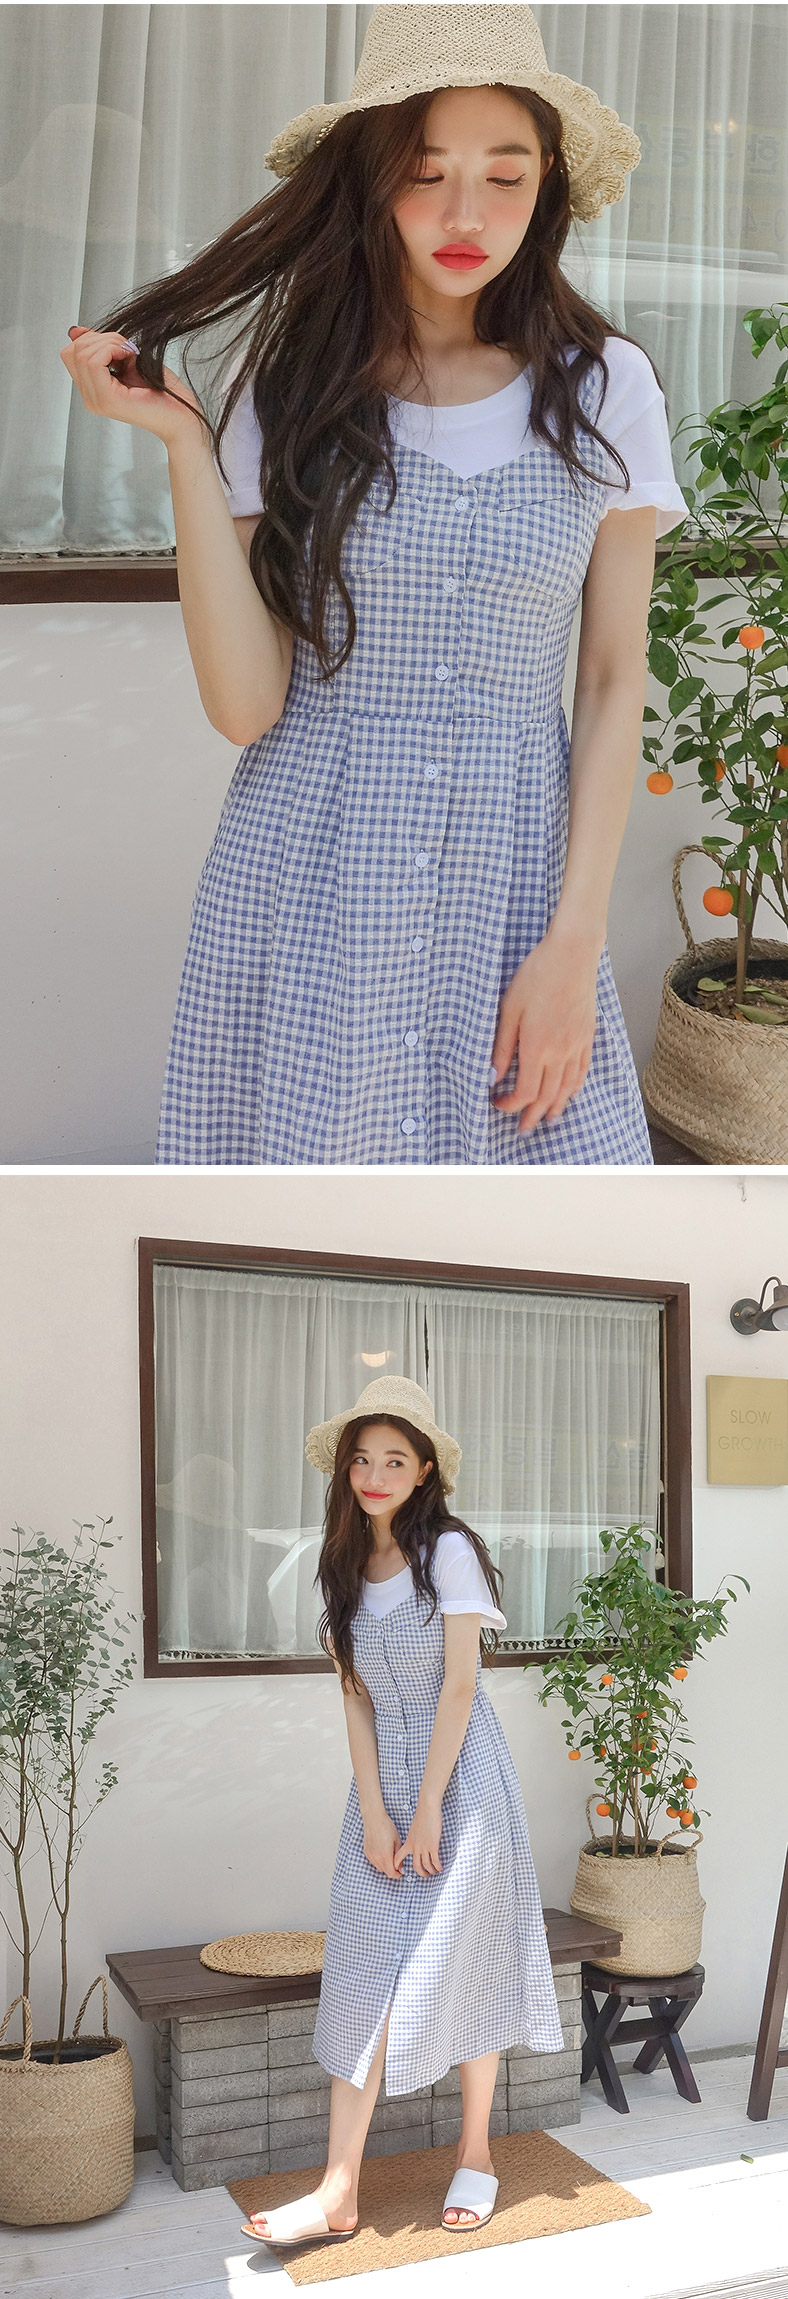 //cdn.nhanh.vn/cdn/store/29770/psCT/20180909/8968149/CHUU_Understand_Me_Checkered_Dress_(1).jpg